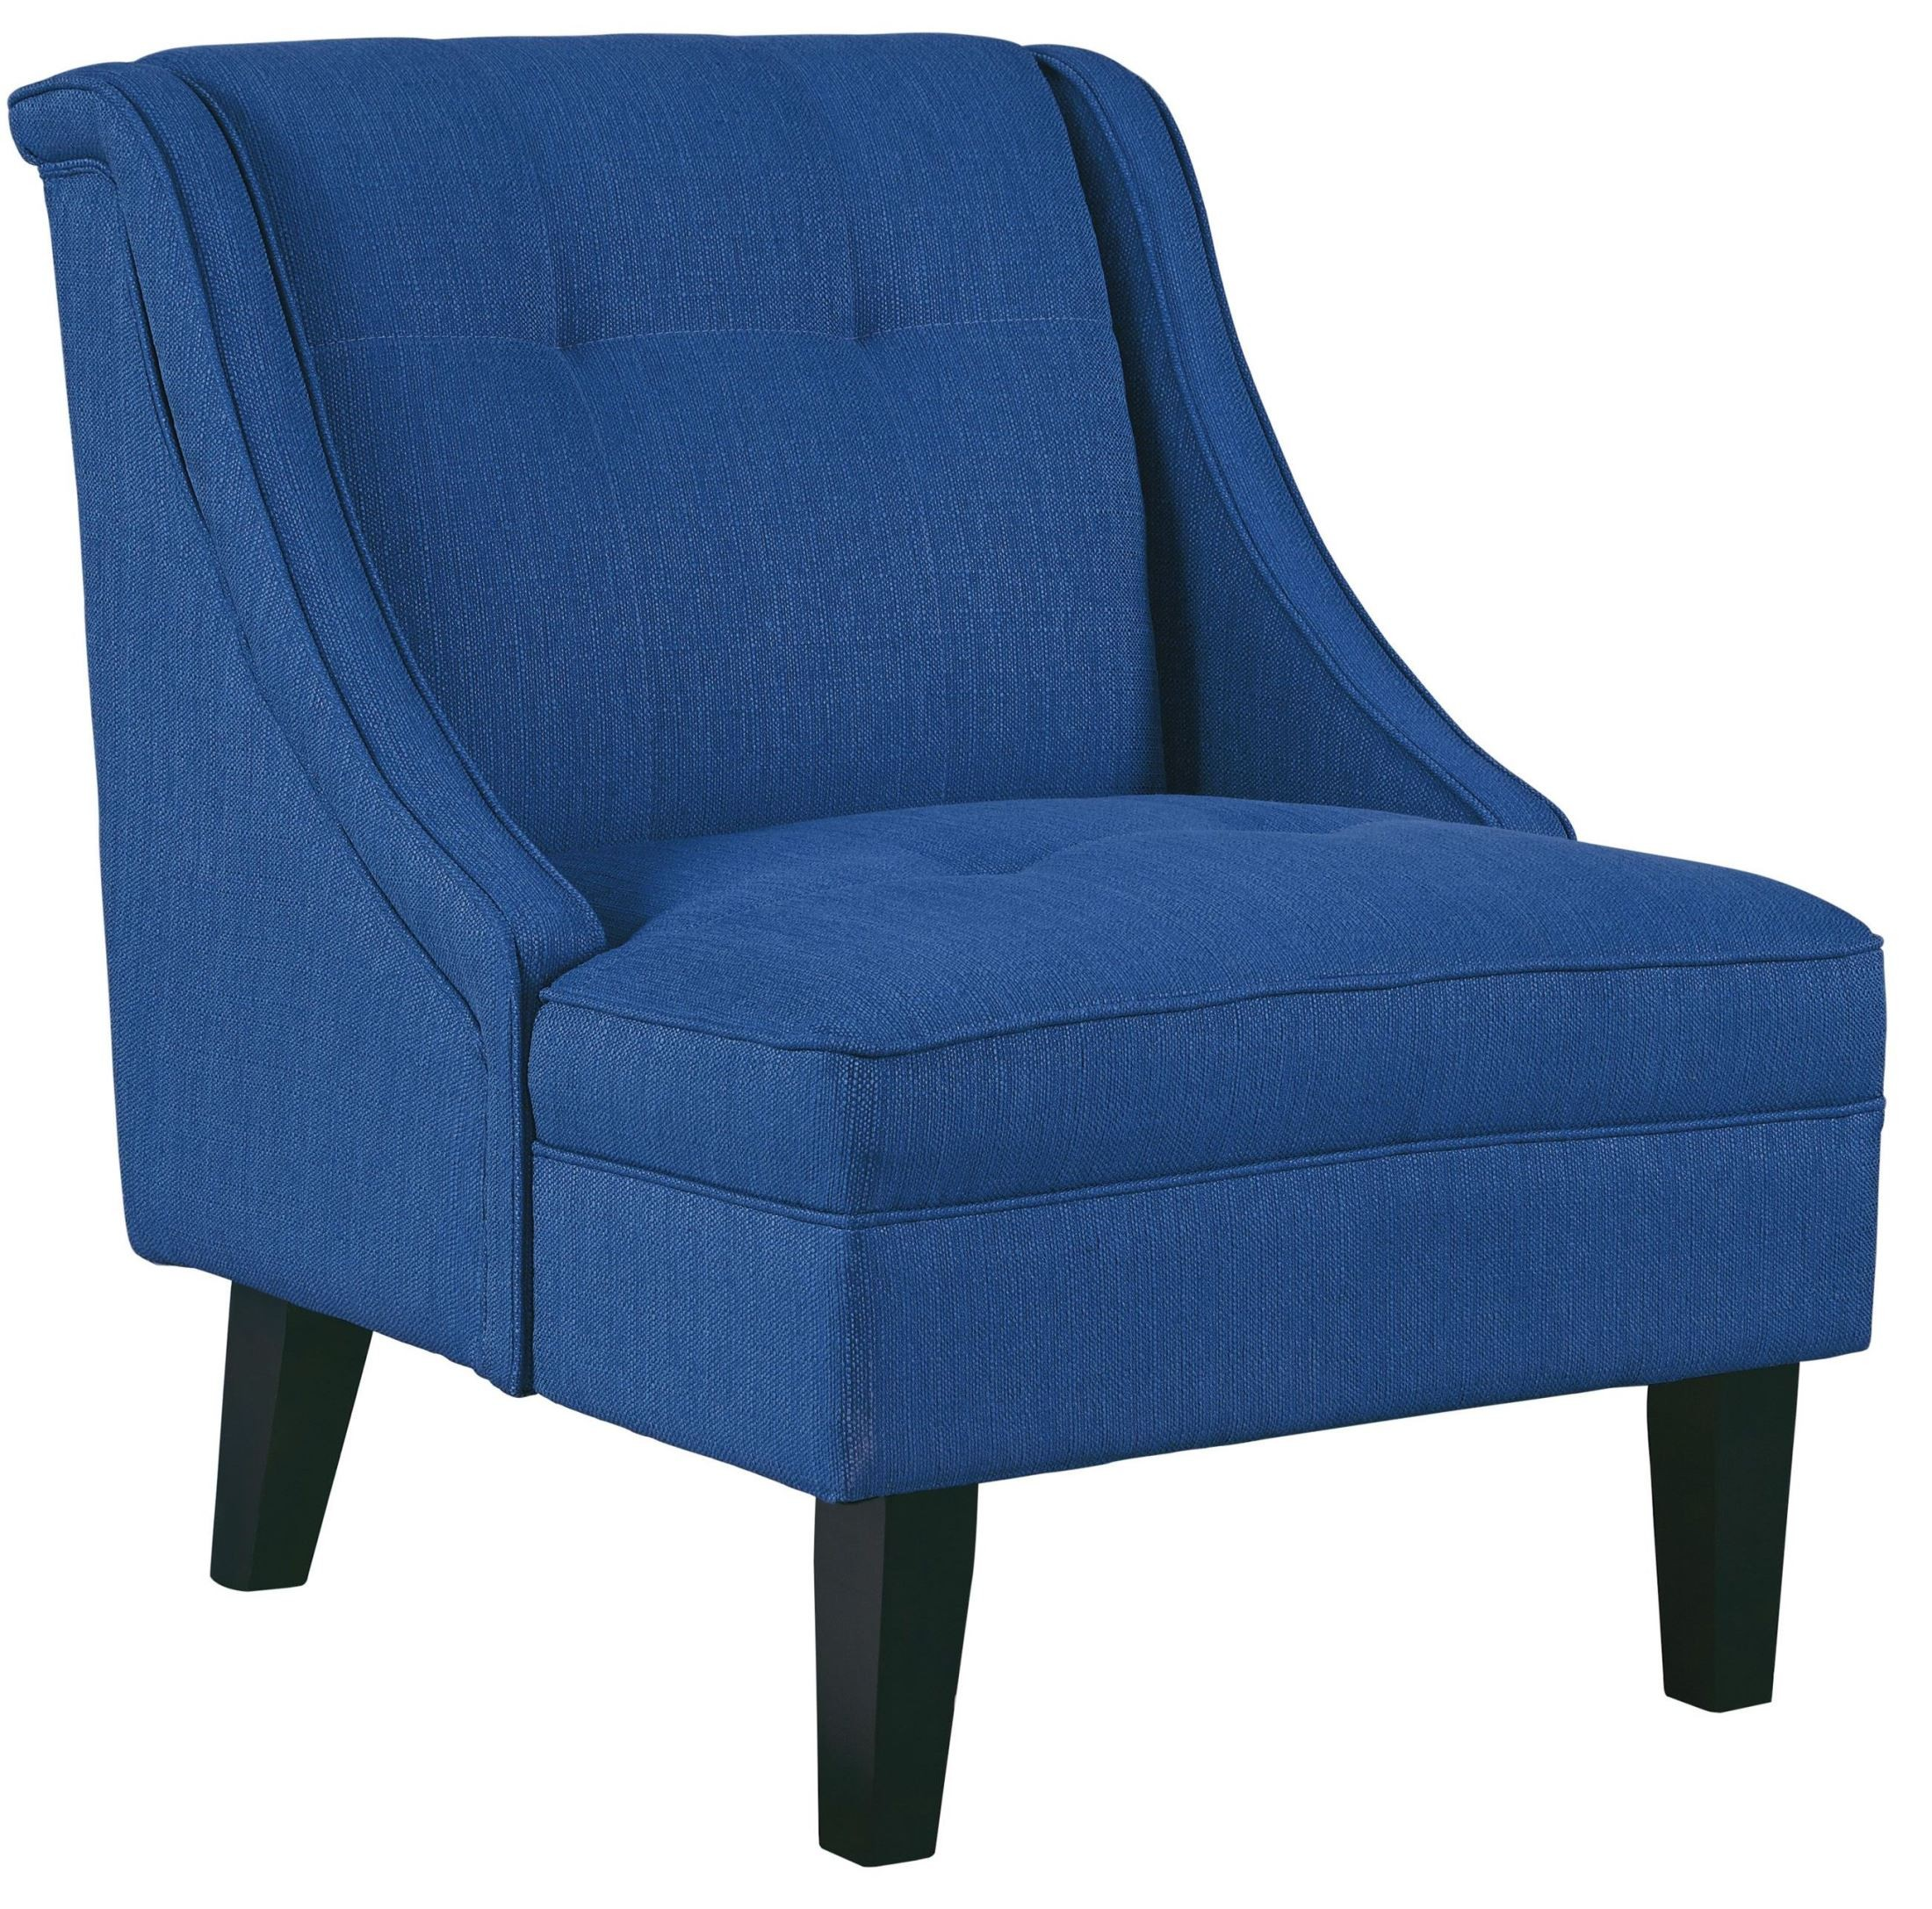 Blue Accent Chair With Arms Clarinda Blue Accent Chair From Ashley 3623260 Coleman